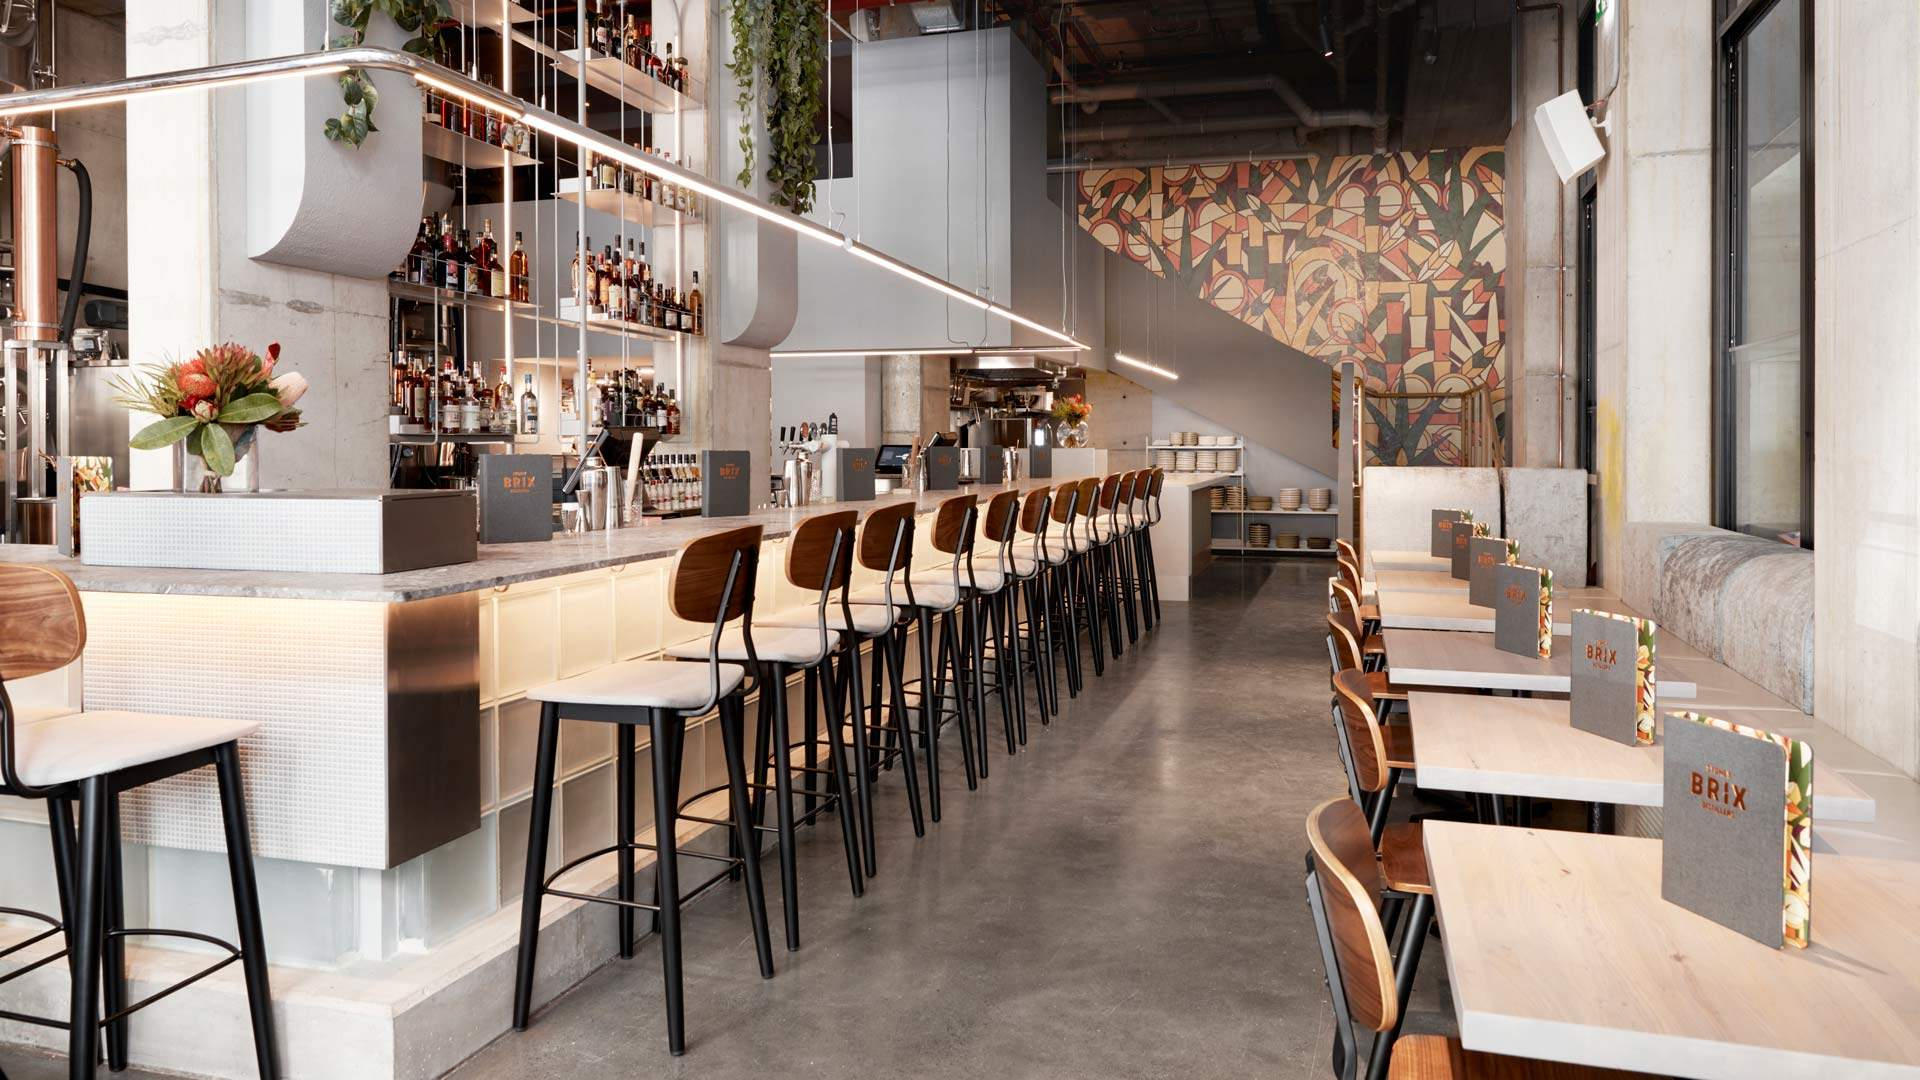 Sydney's Inner City Is Now Home to Craft Rum Distillery and Bar Brix